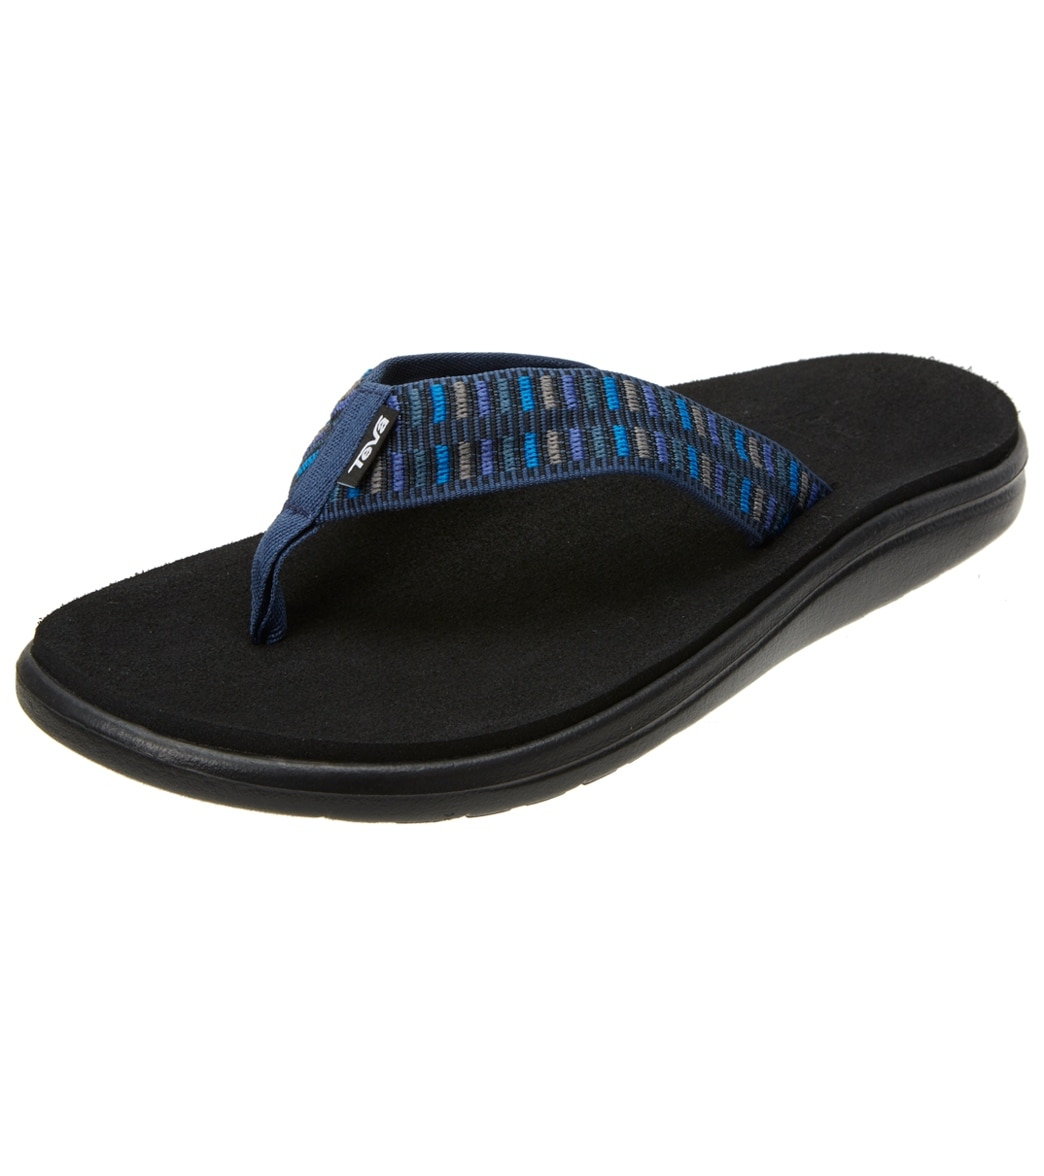 0ec66e616 Teva Men s Voya Flip Flop at SwimOutlet.com